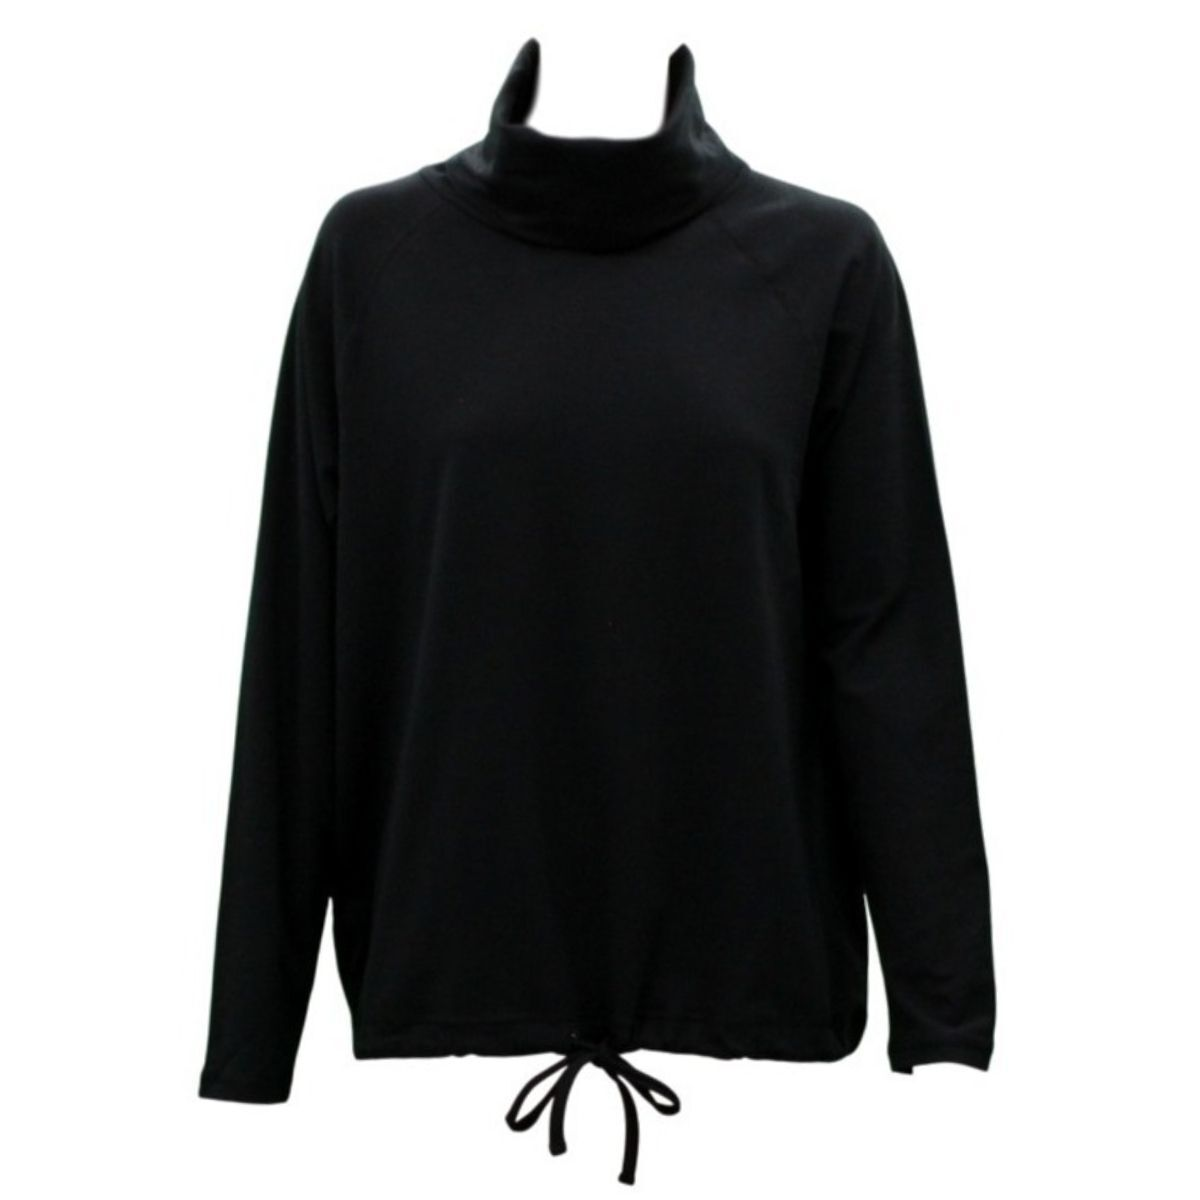 Women-039-s-Cotton-Long-Sleeve-Turtle-Neck-Skivvy-Top-High-Neck-w-Drawstring-Hem thumbnail 3